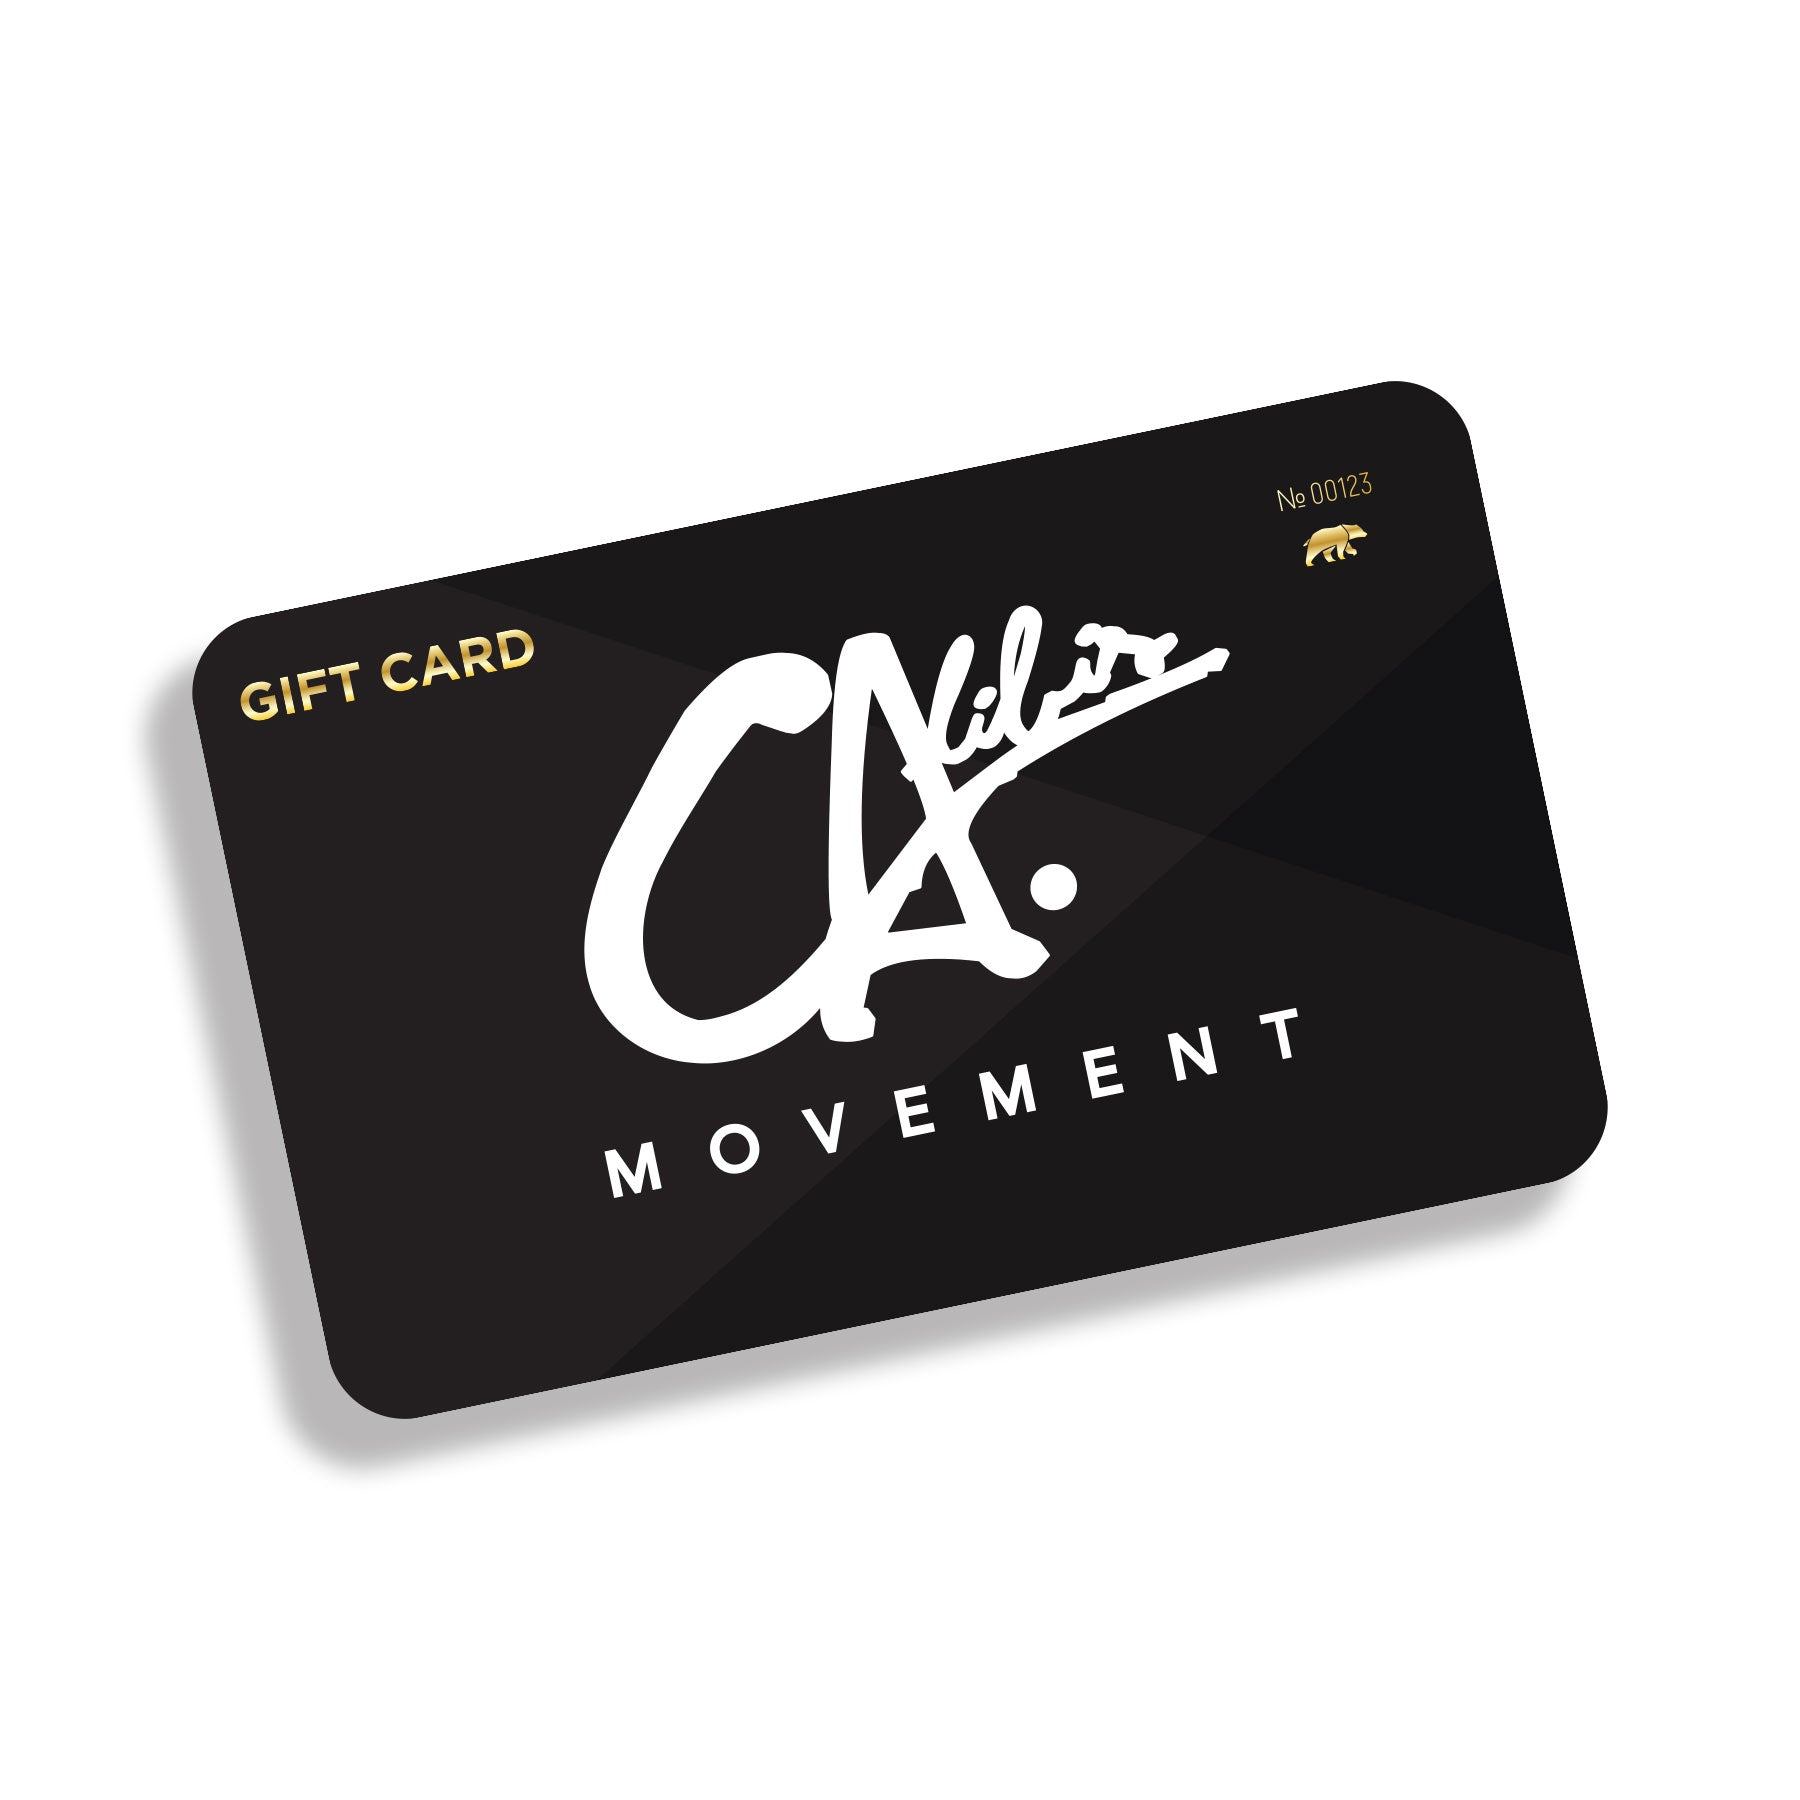 GIFT CARDS for Calibis Clothing